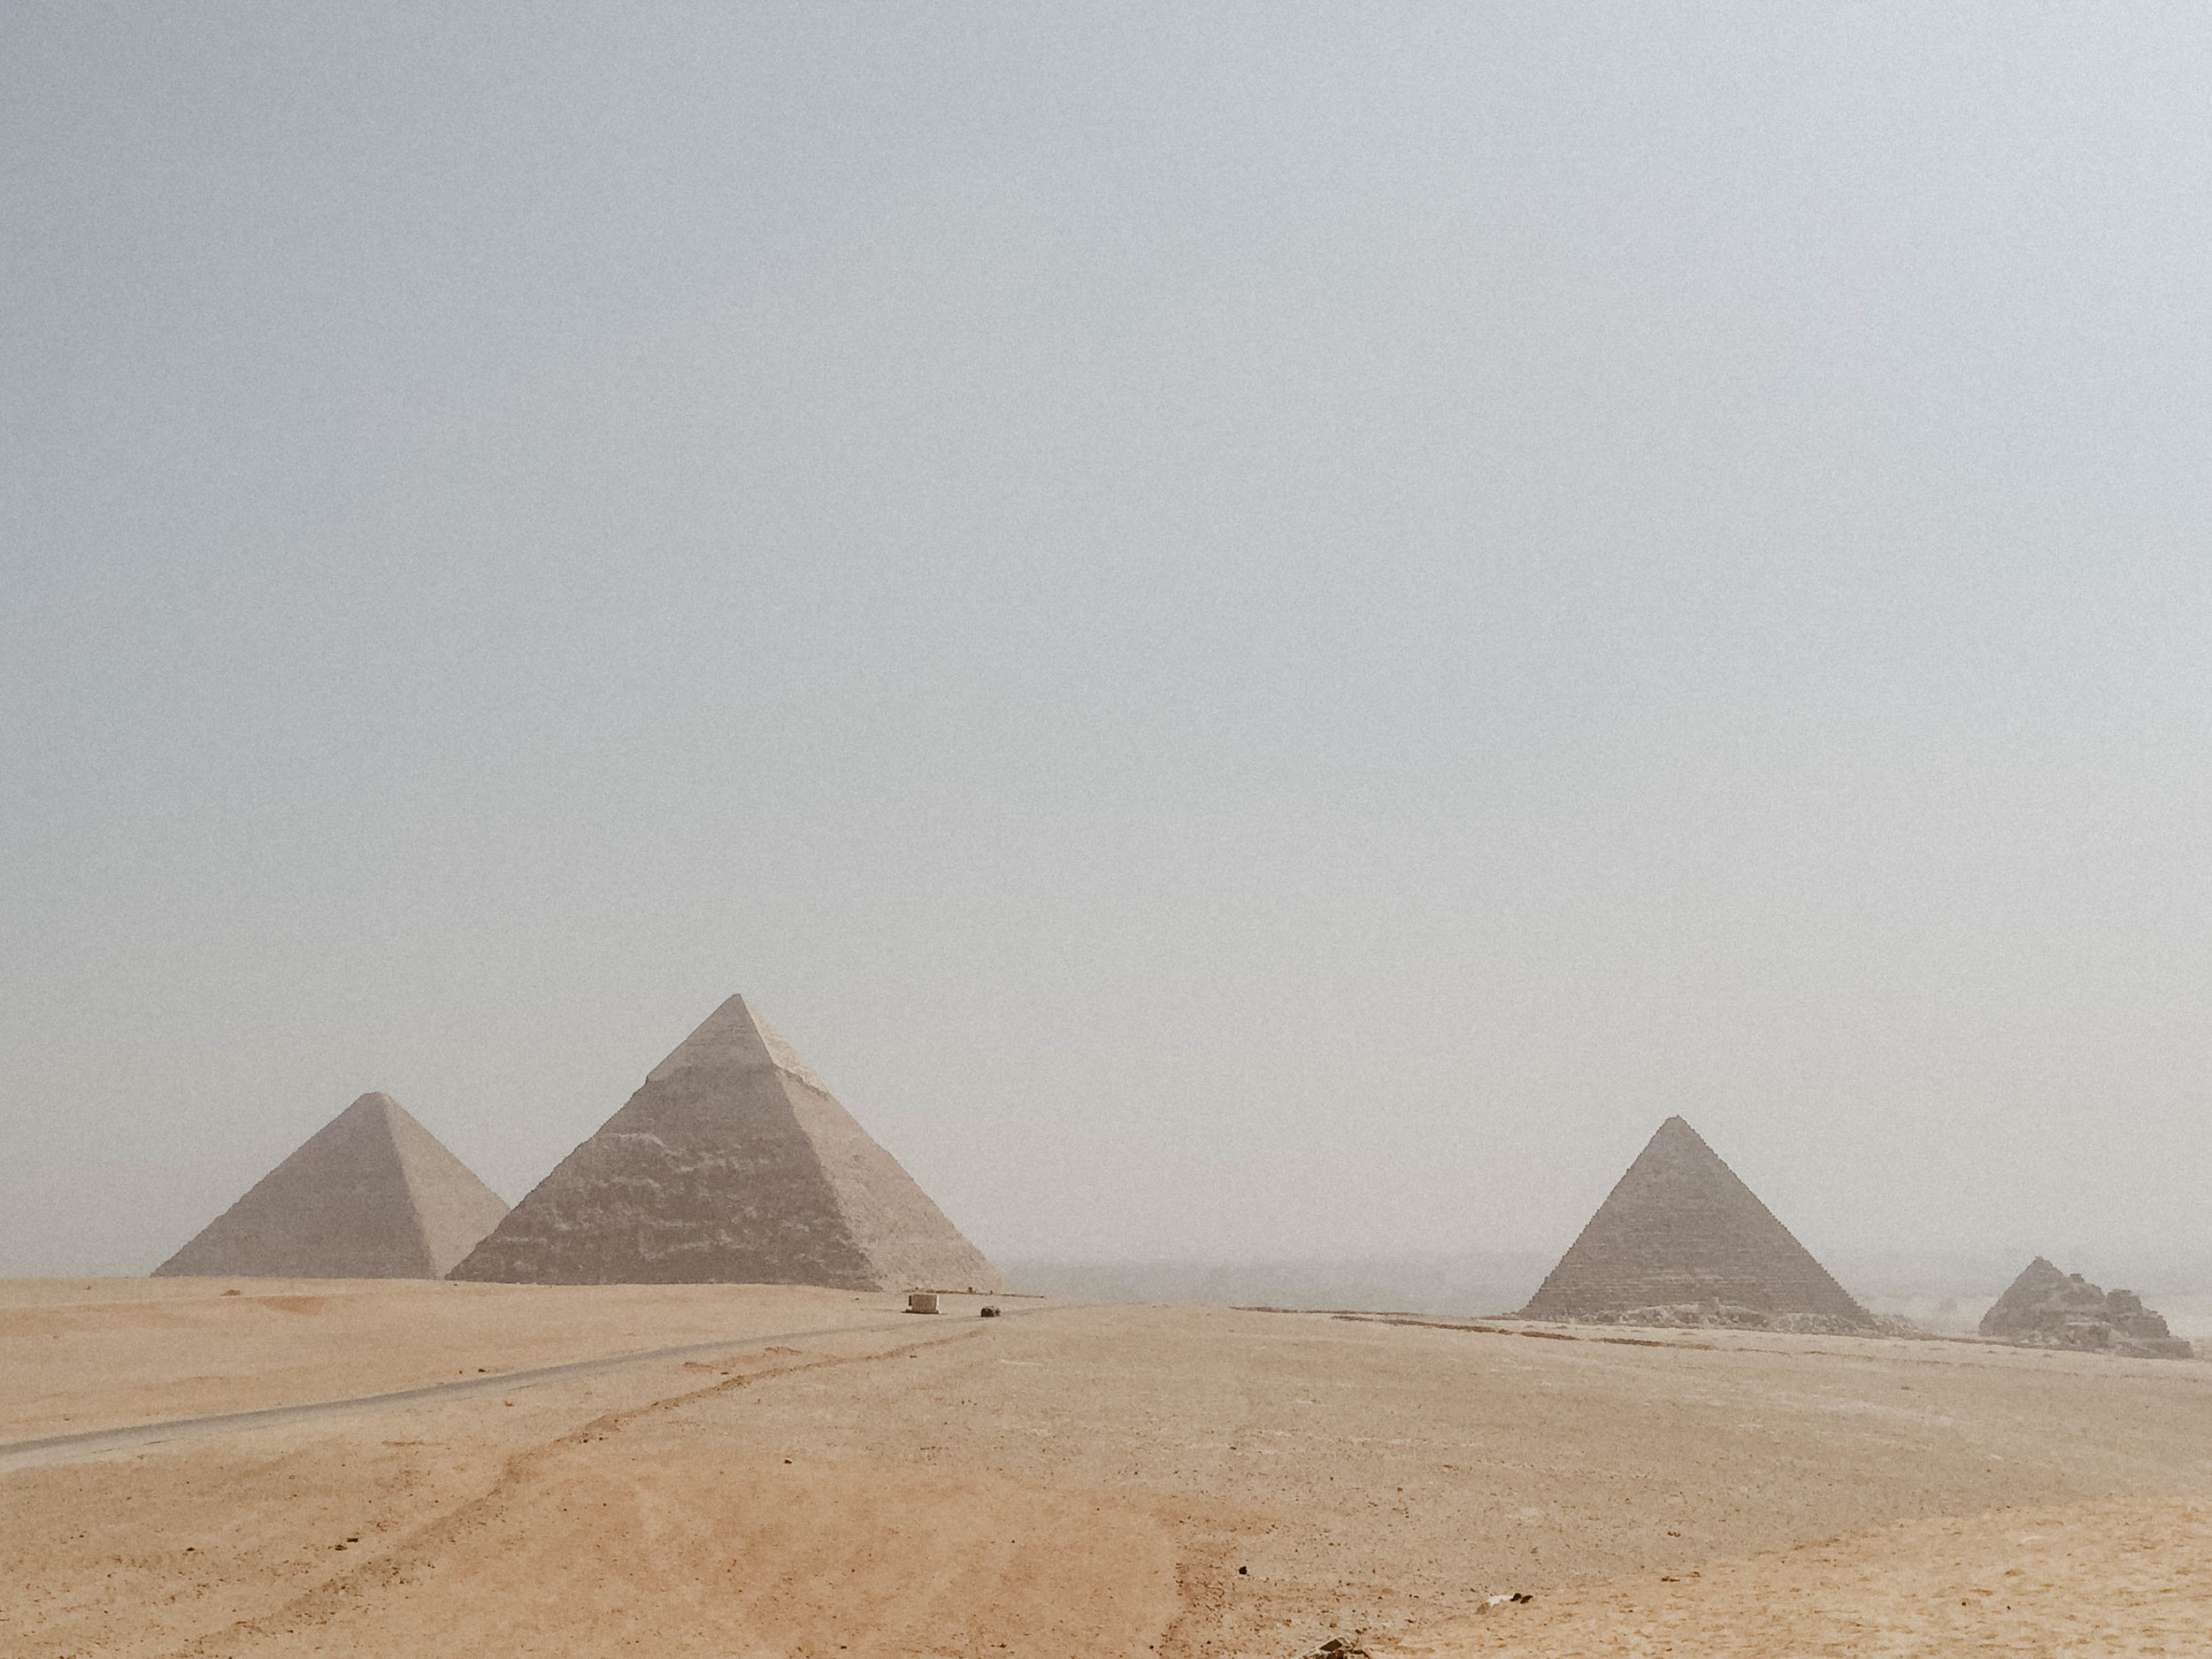 Pyramids: - One of the BEST experiences I've had.  I was just in awe and couldn't believe I was finally there.  It looked like a Hollywood backdrop, it was surreal.  The only downside was my damn tour guide wouldn't let us leave him to explore without giving us